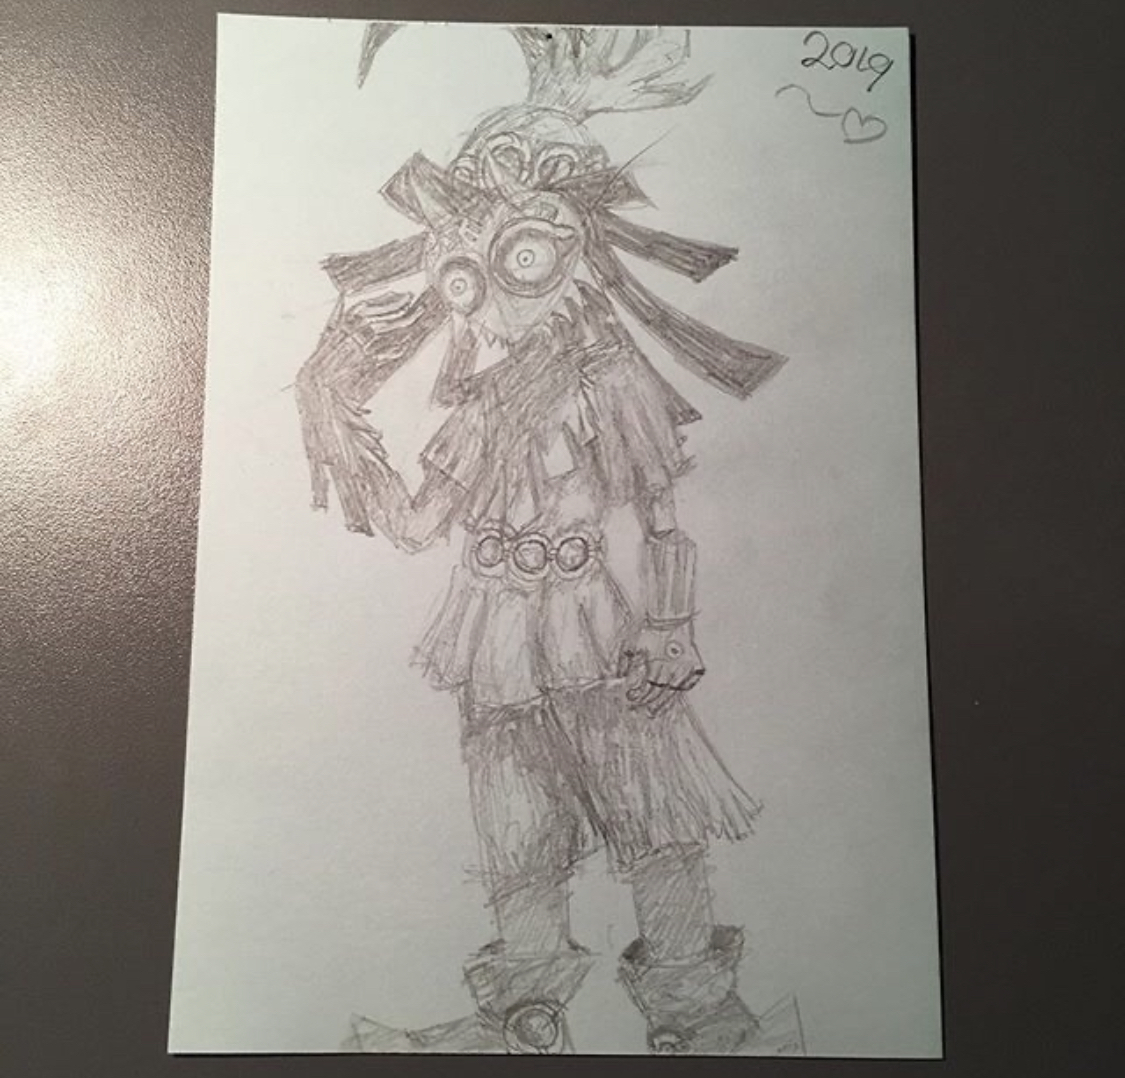 Made this for a friend of mine, from the game Majoras Mask